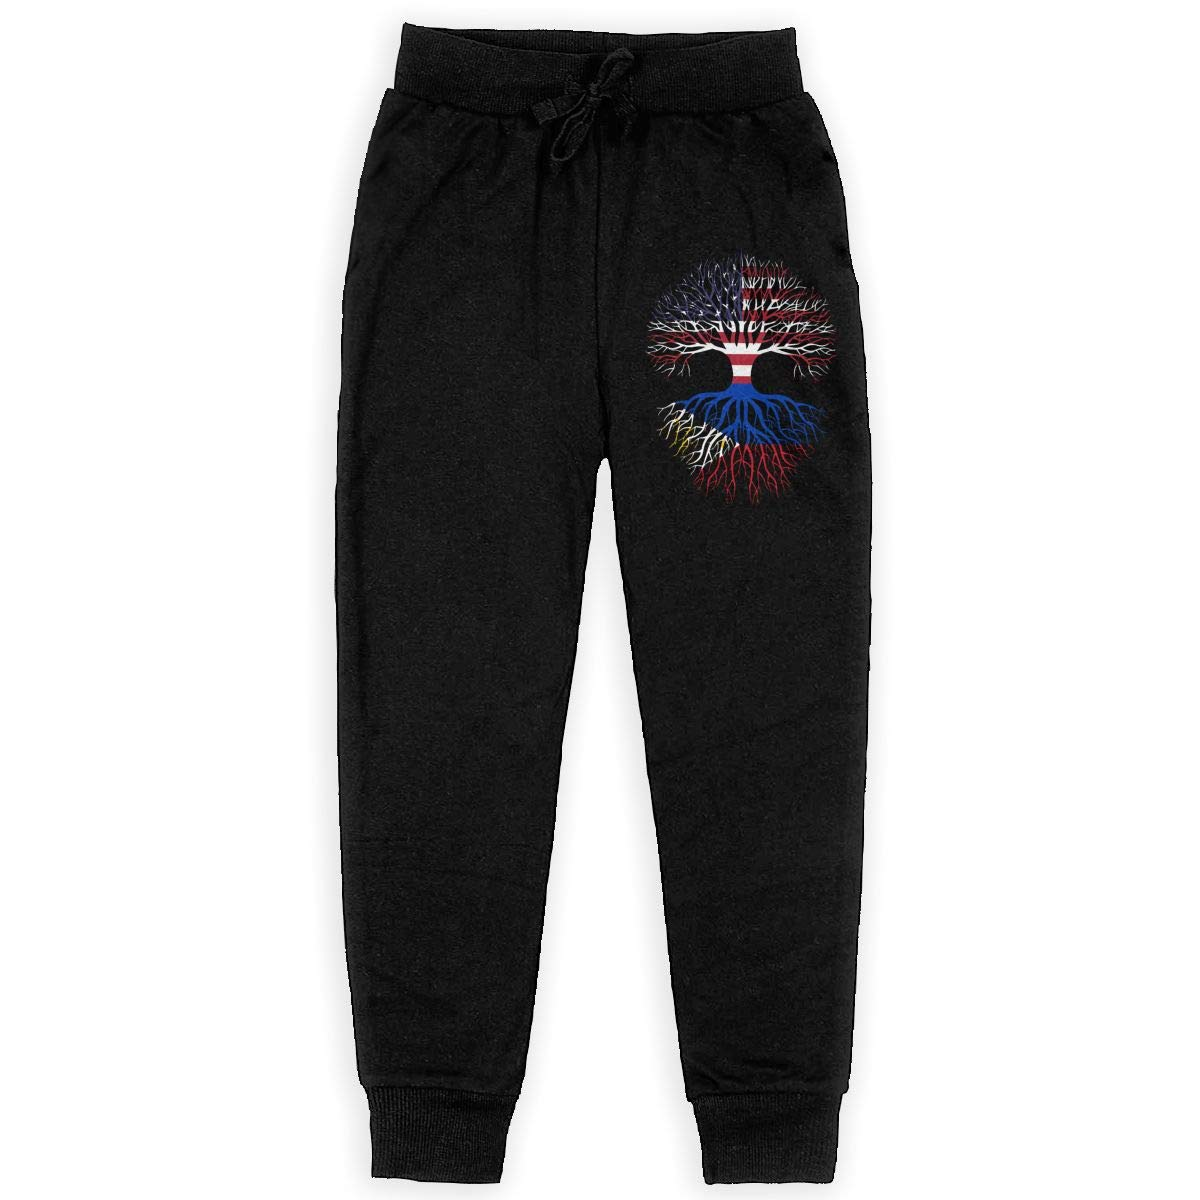 Boys Active Pants for Teenager Boys WYZVK22 American Grown Philippines Roots Soft//Cozy Sweatpants